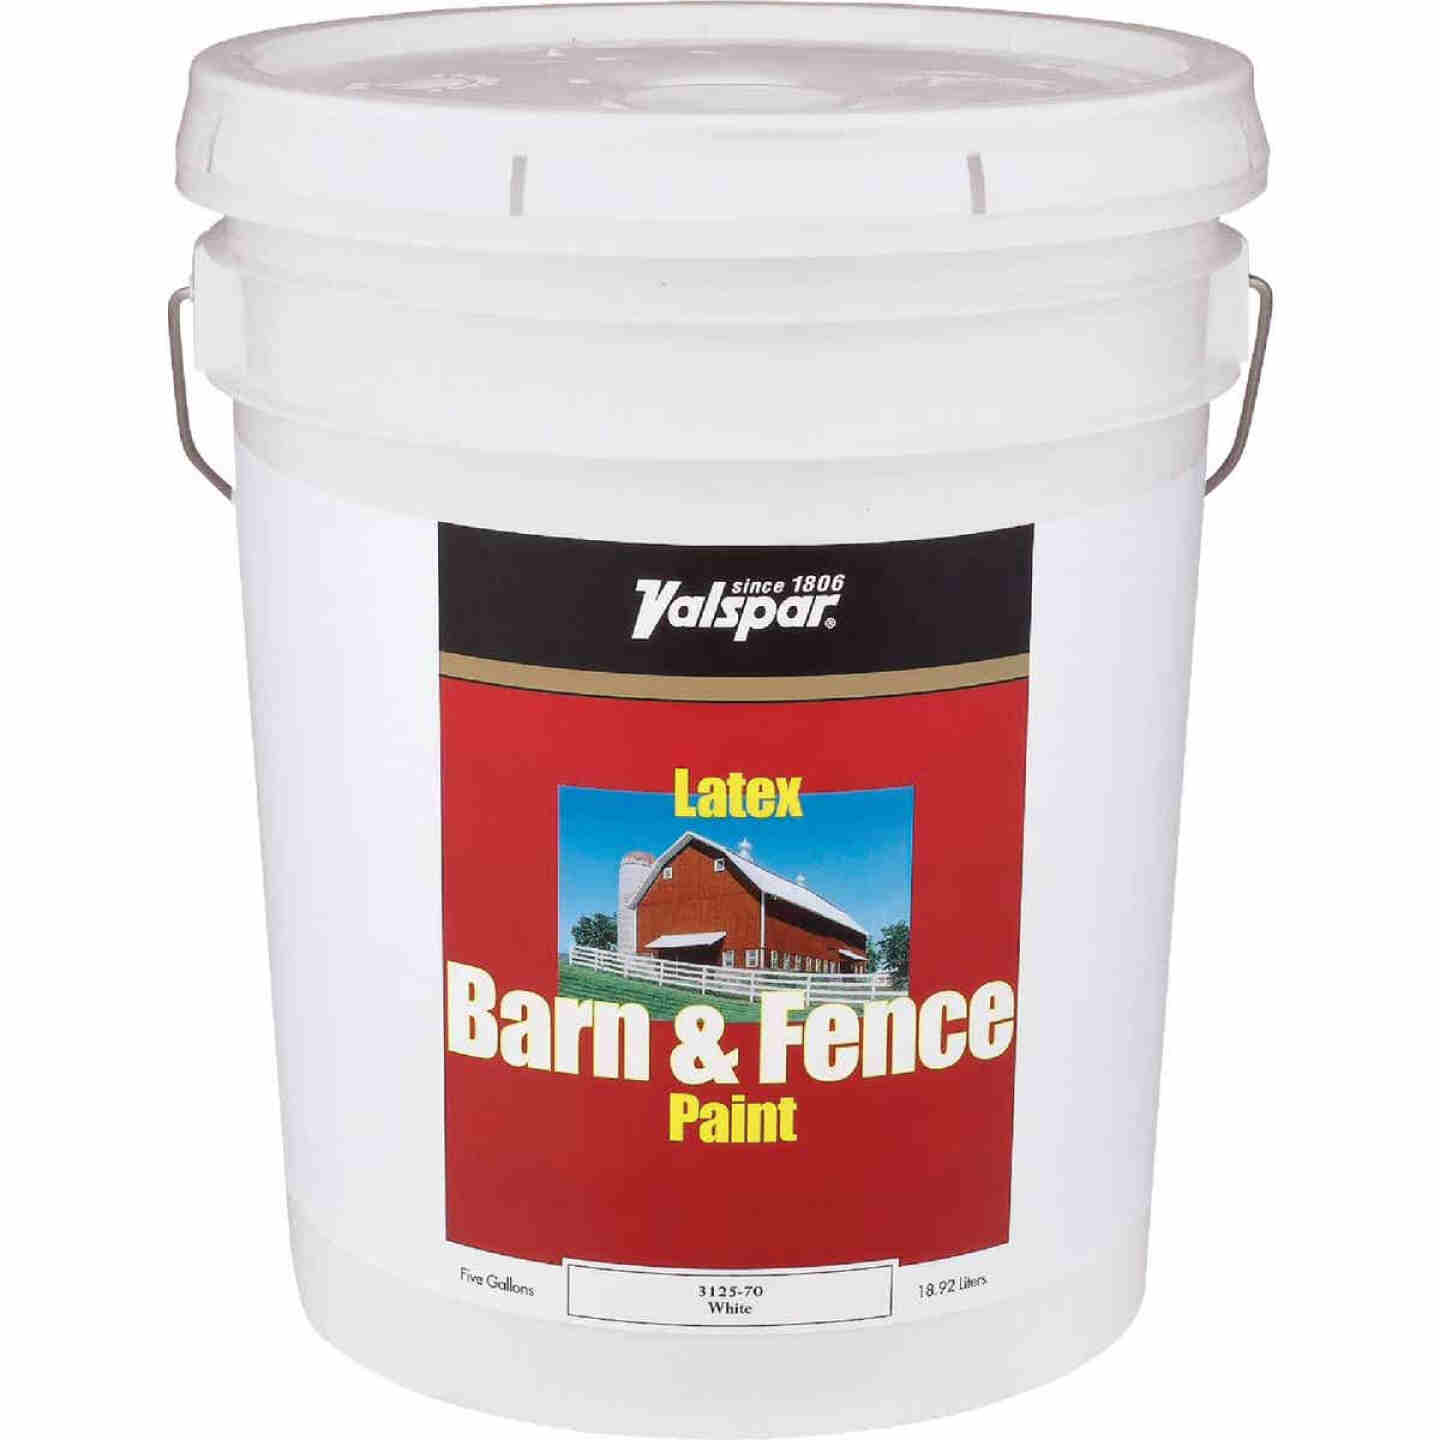 Valspar Latex Paint & Primer In One Flat Barn & Fence Paint, White, 5 Gal. Image 1